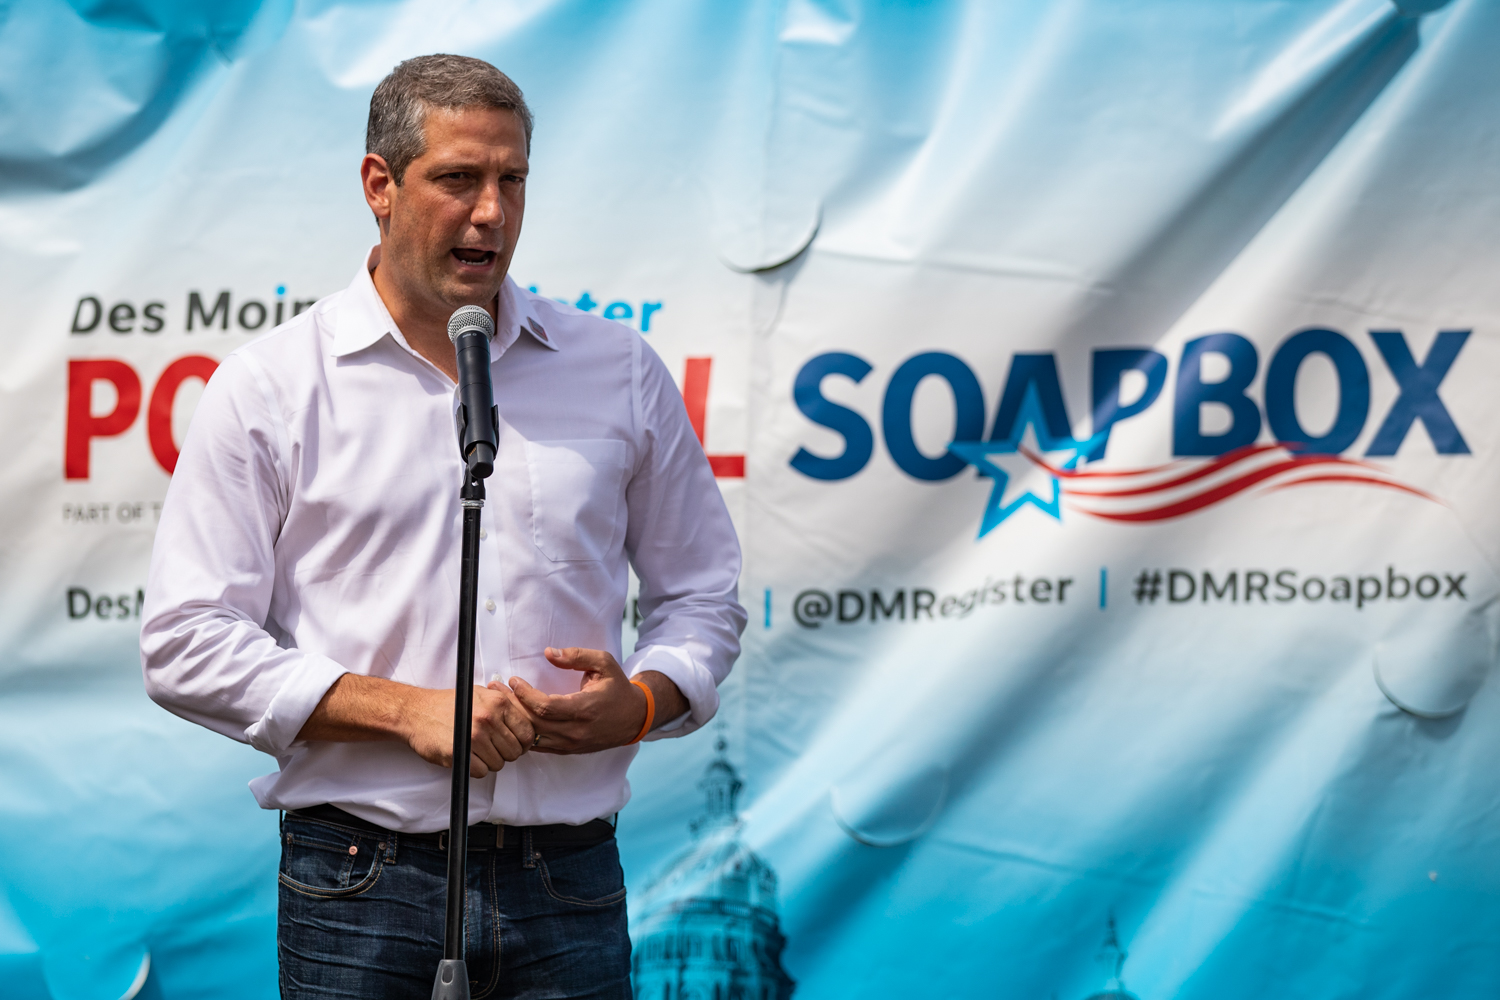 Rep. Tim Ryan speaks at the Des Moines Register Political Soapbox during the Iowa State Fair in Des Moines, IA on Saturday, August 10, 2019.